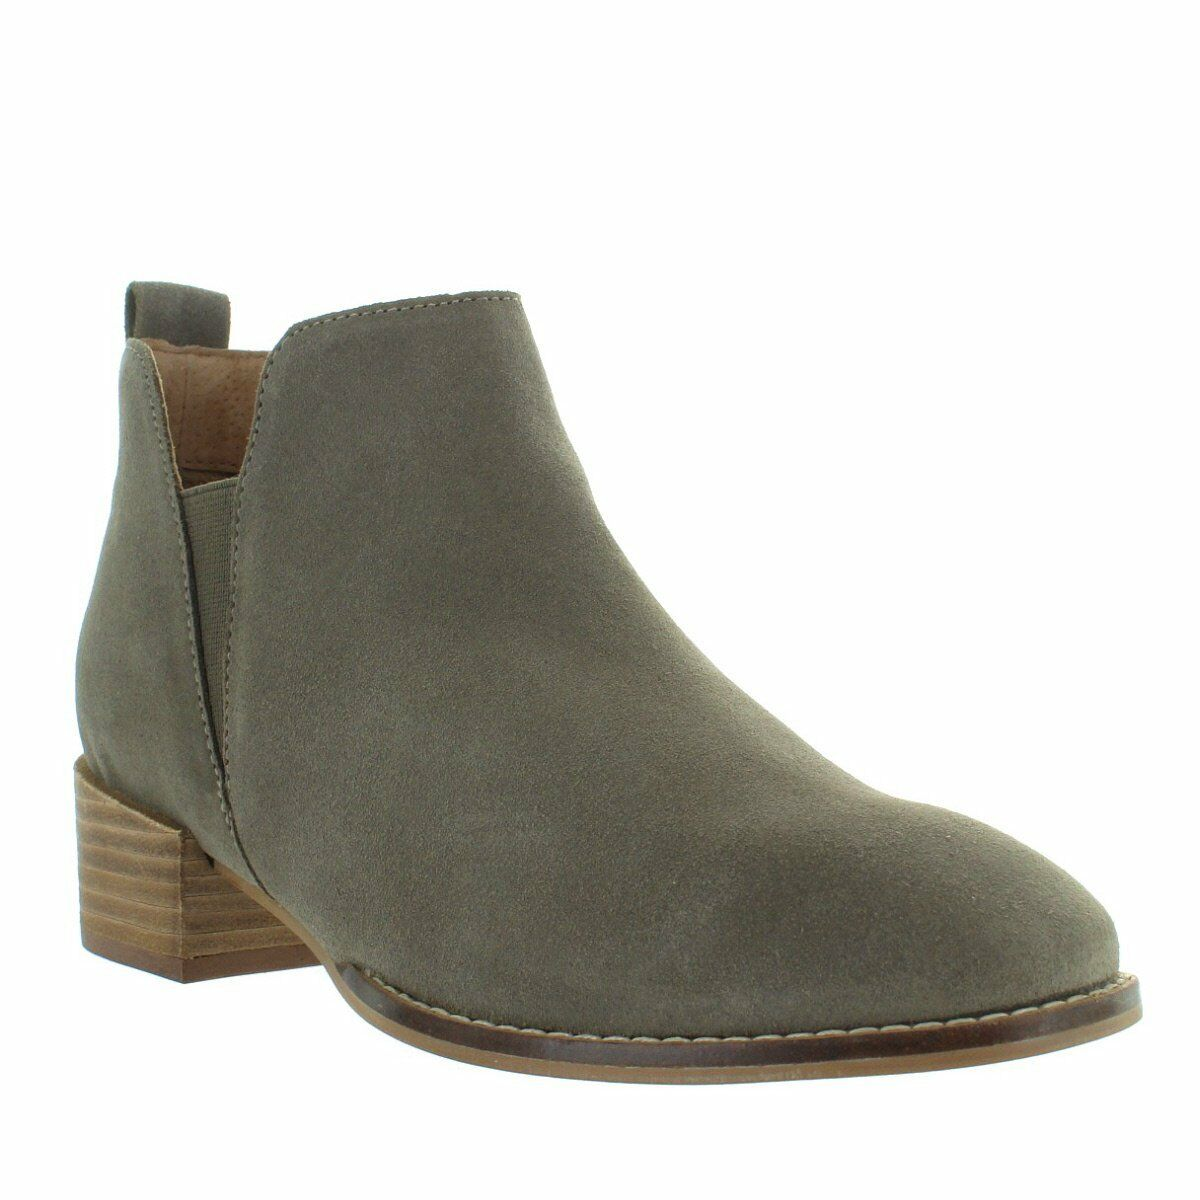 Seychelles Offstage - Taupe Suede Suede Suede Dual Gore Pull-On démarrageie b8c788